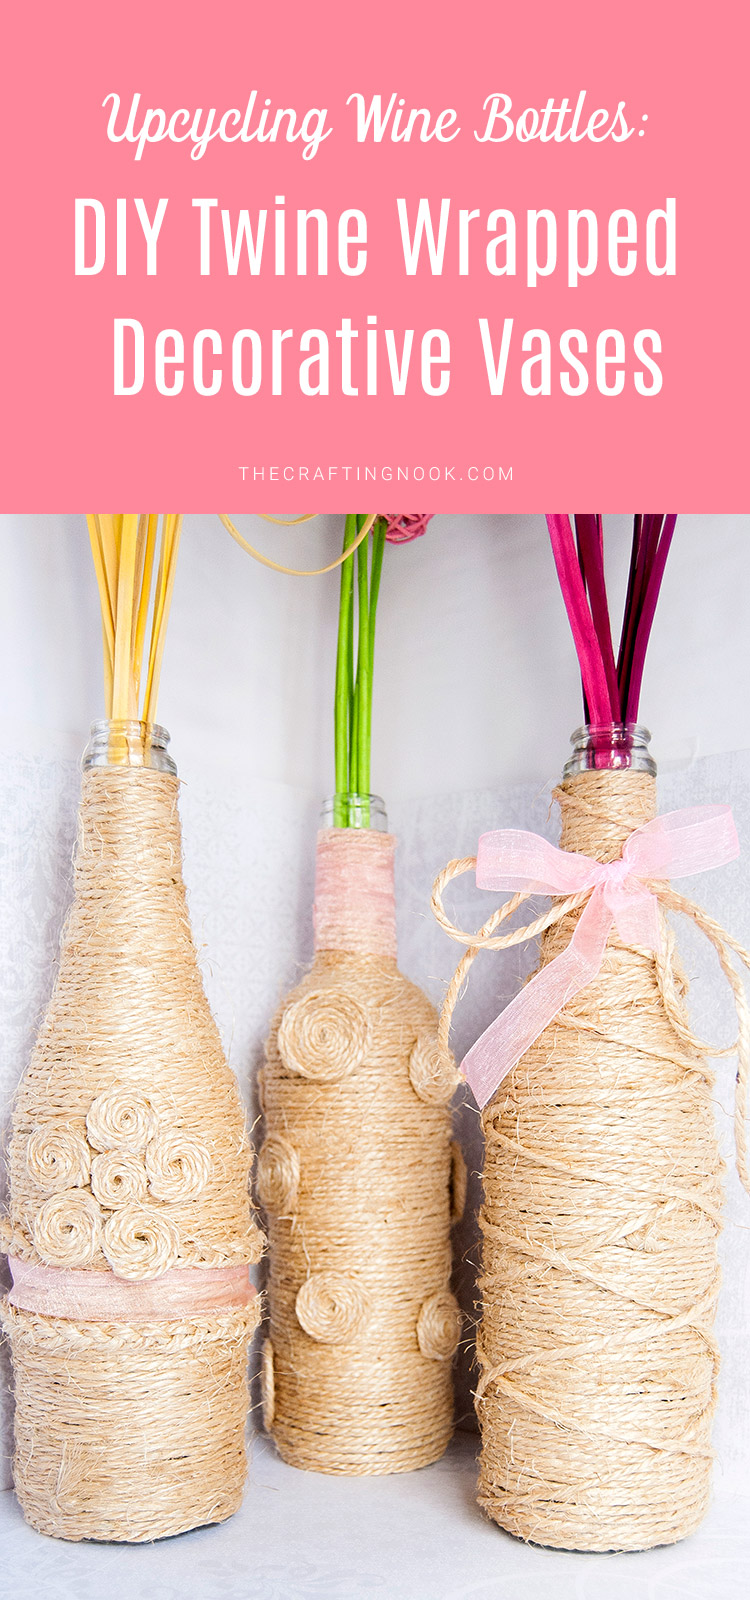 Upcycling Wine Bottles: DIY Twine Wrapped Decorative Vases